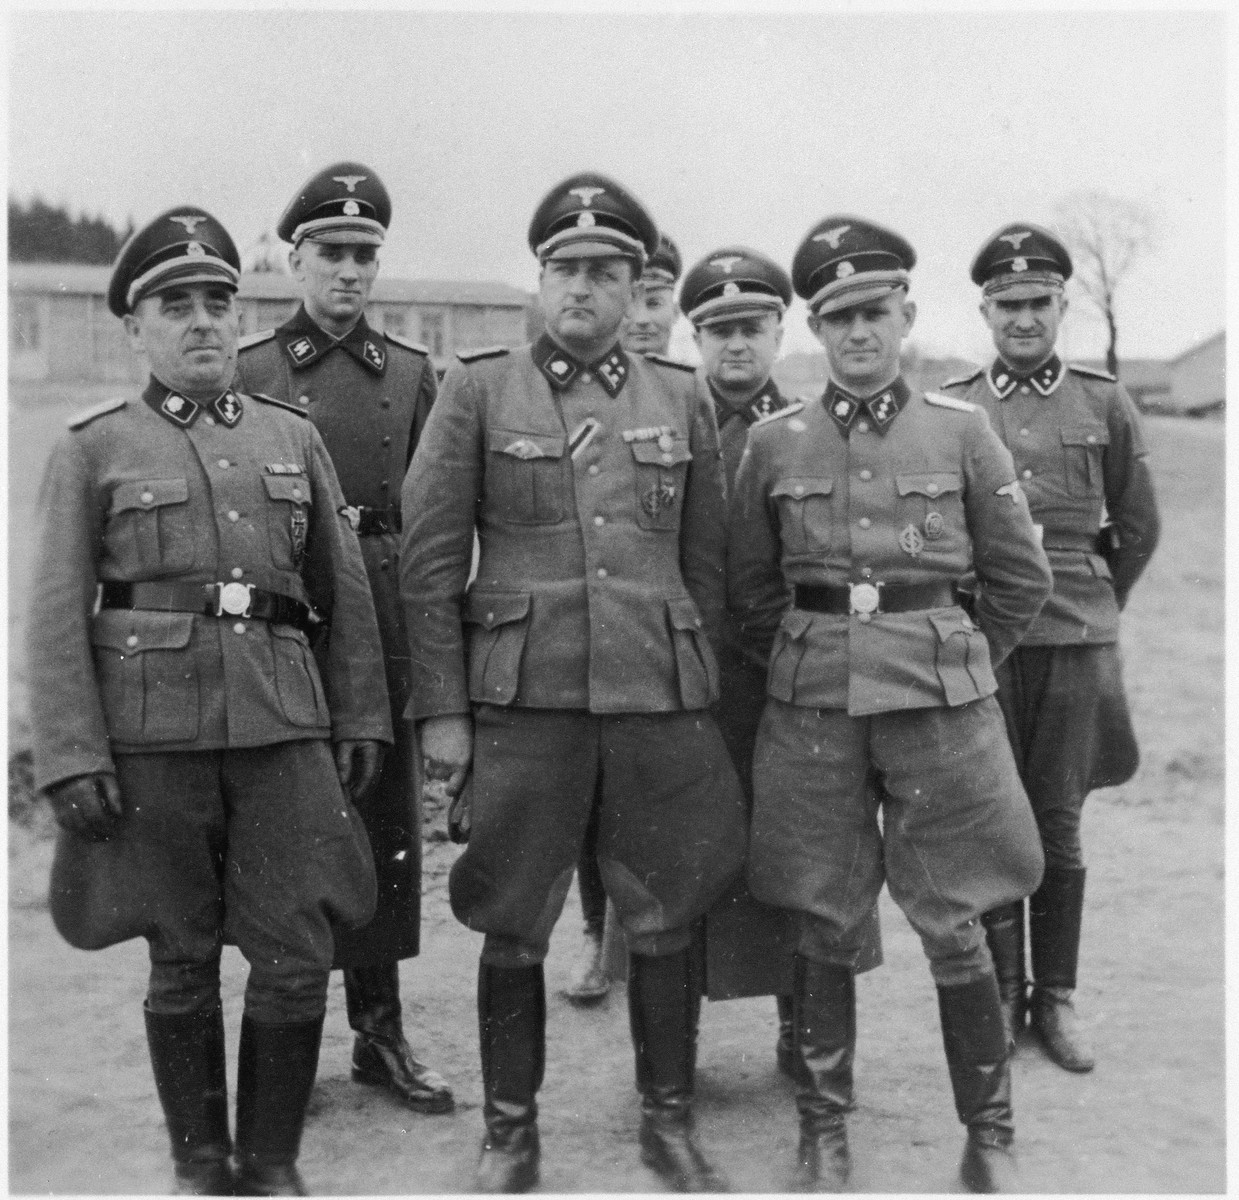 Group portrait of SS officers at the Gross Rosen concentration camp.  The commandant Arthur Roedl is in the center.  Scond from the left is probably Dr. Friedrich Entress.  SS-Ostuf Anton Thumann is in the first row, right.